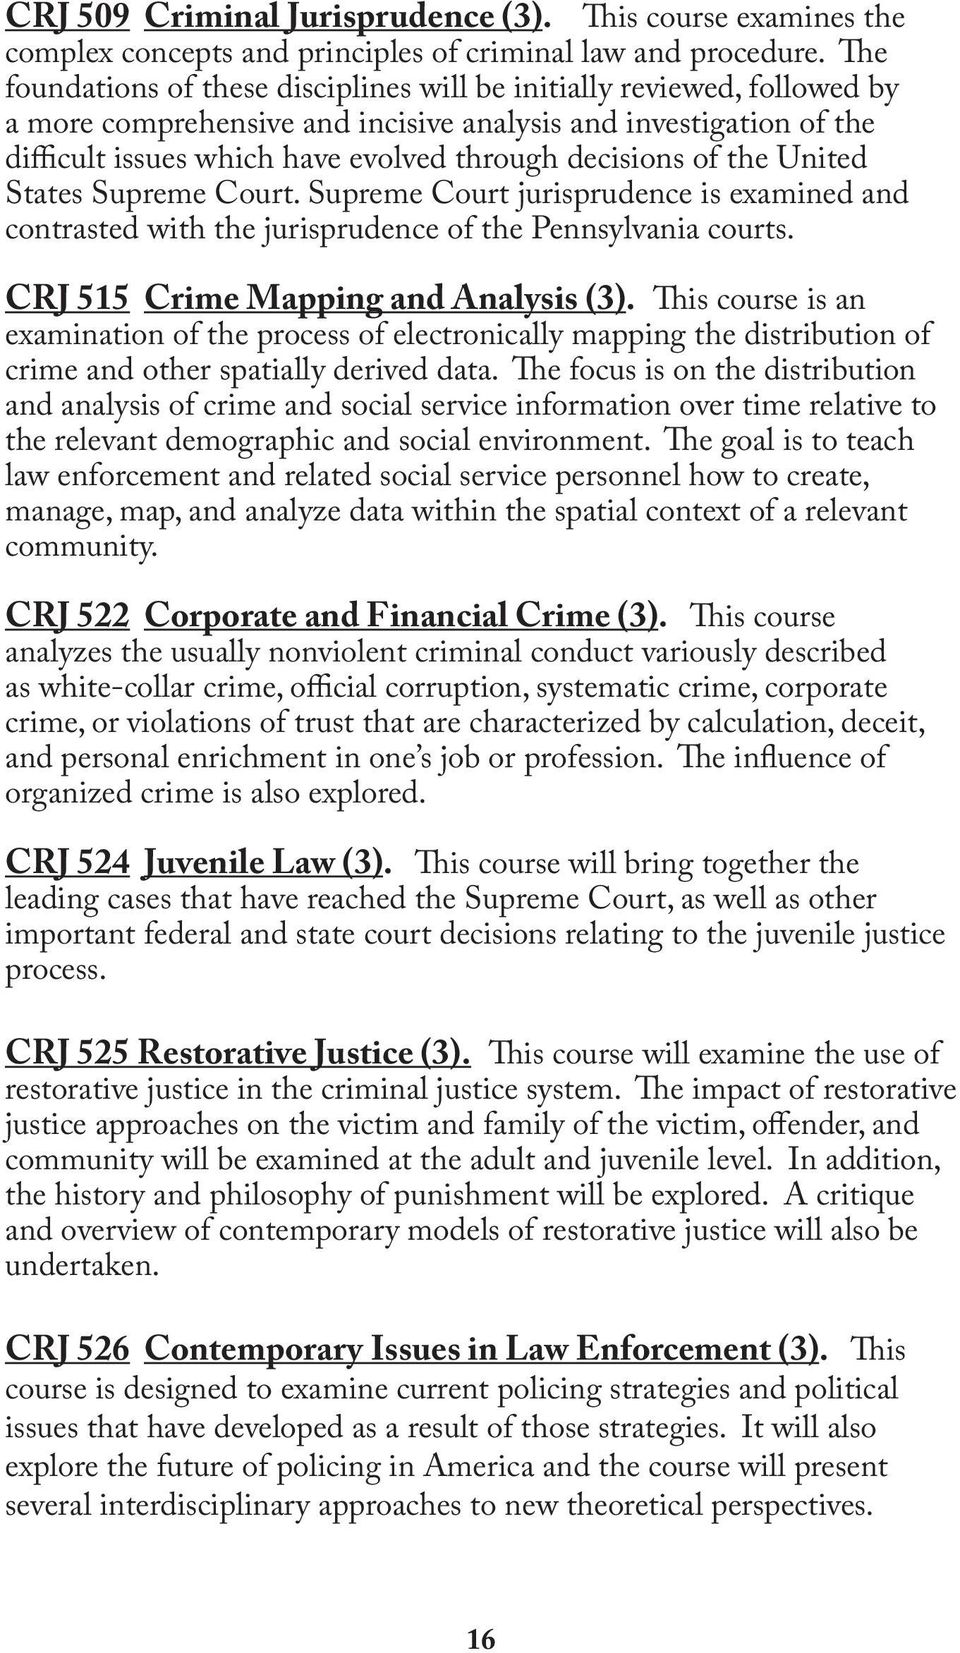 of the United States Supreme Court. Supreme Court jurisprudence is examined and contrasted with the jurisprudence of the Pennsylvania courts. CRJ 515 Crime Mapping and Analysis (3).